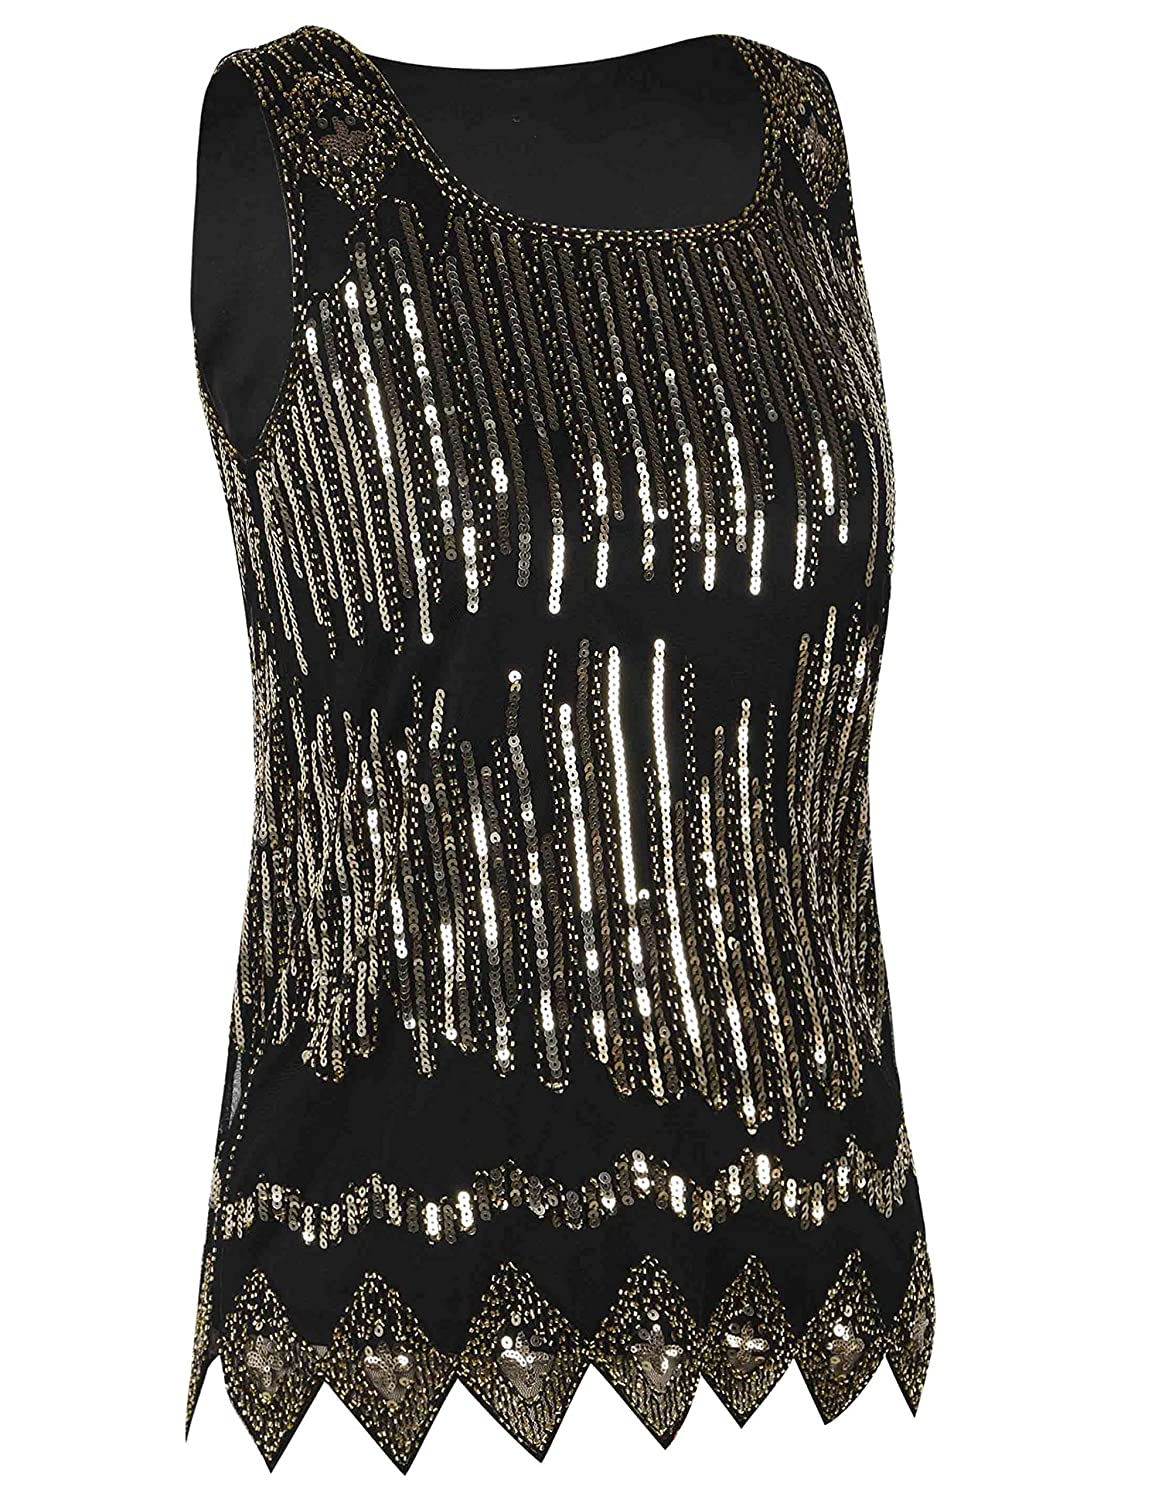 c86b2edf5c82ed PrettyGuide Women s Sequin Top Flowy Sparkly Cocktail Tank Party Dressy Tops  at Amazon Women s Clothing store